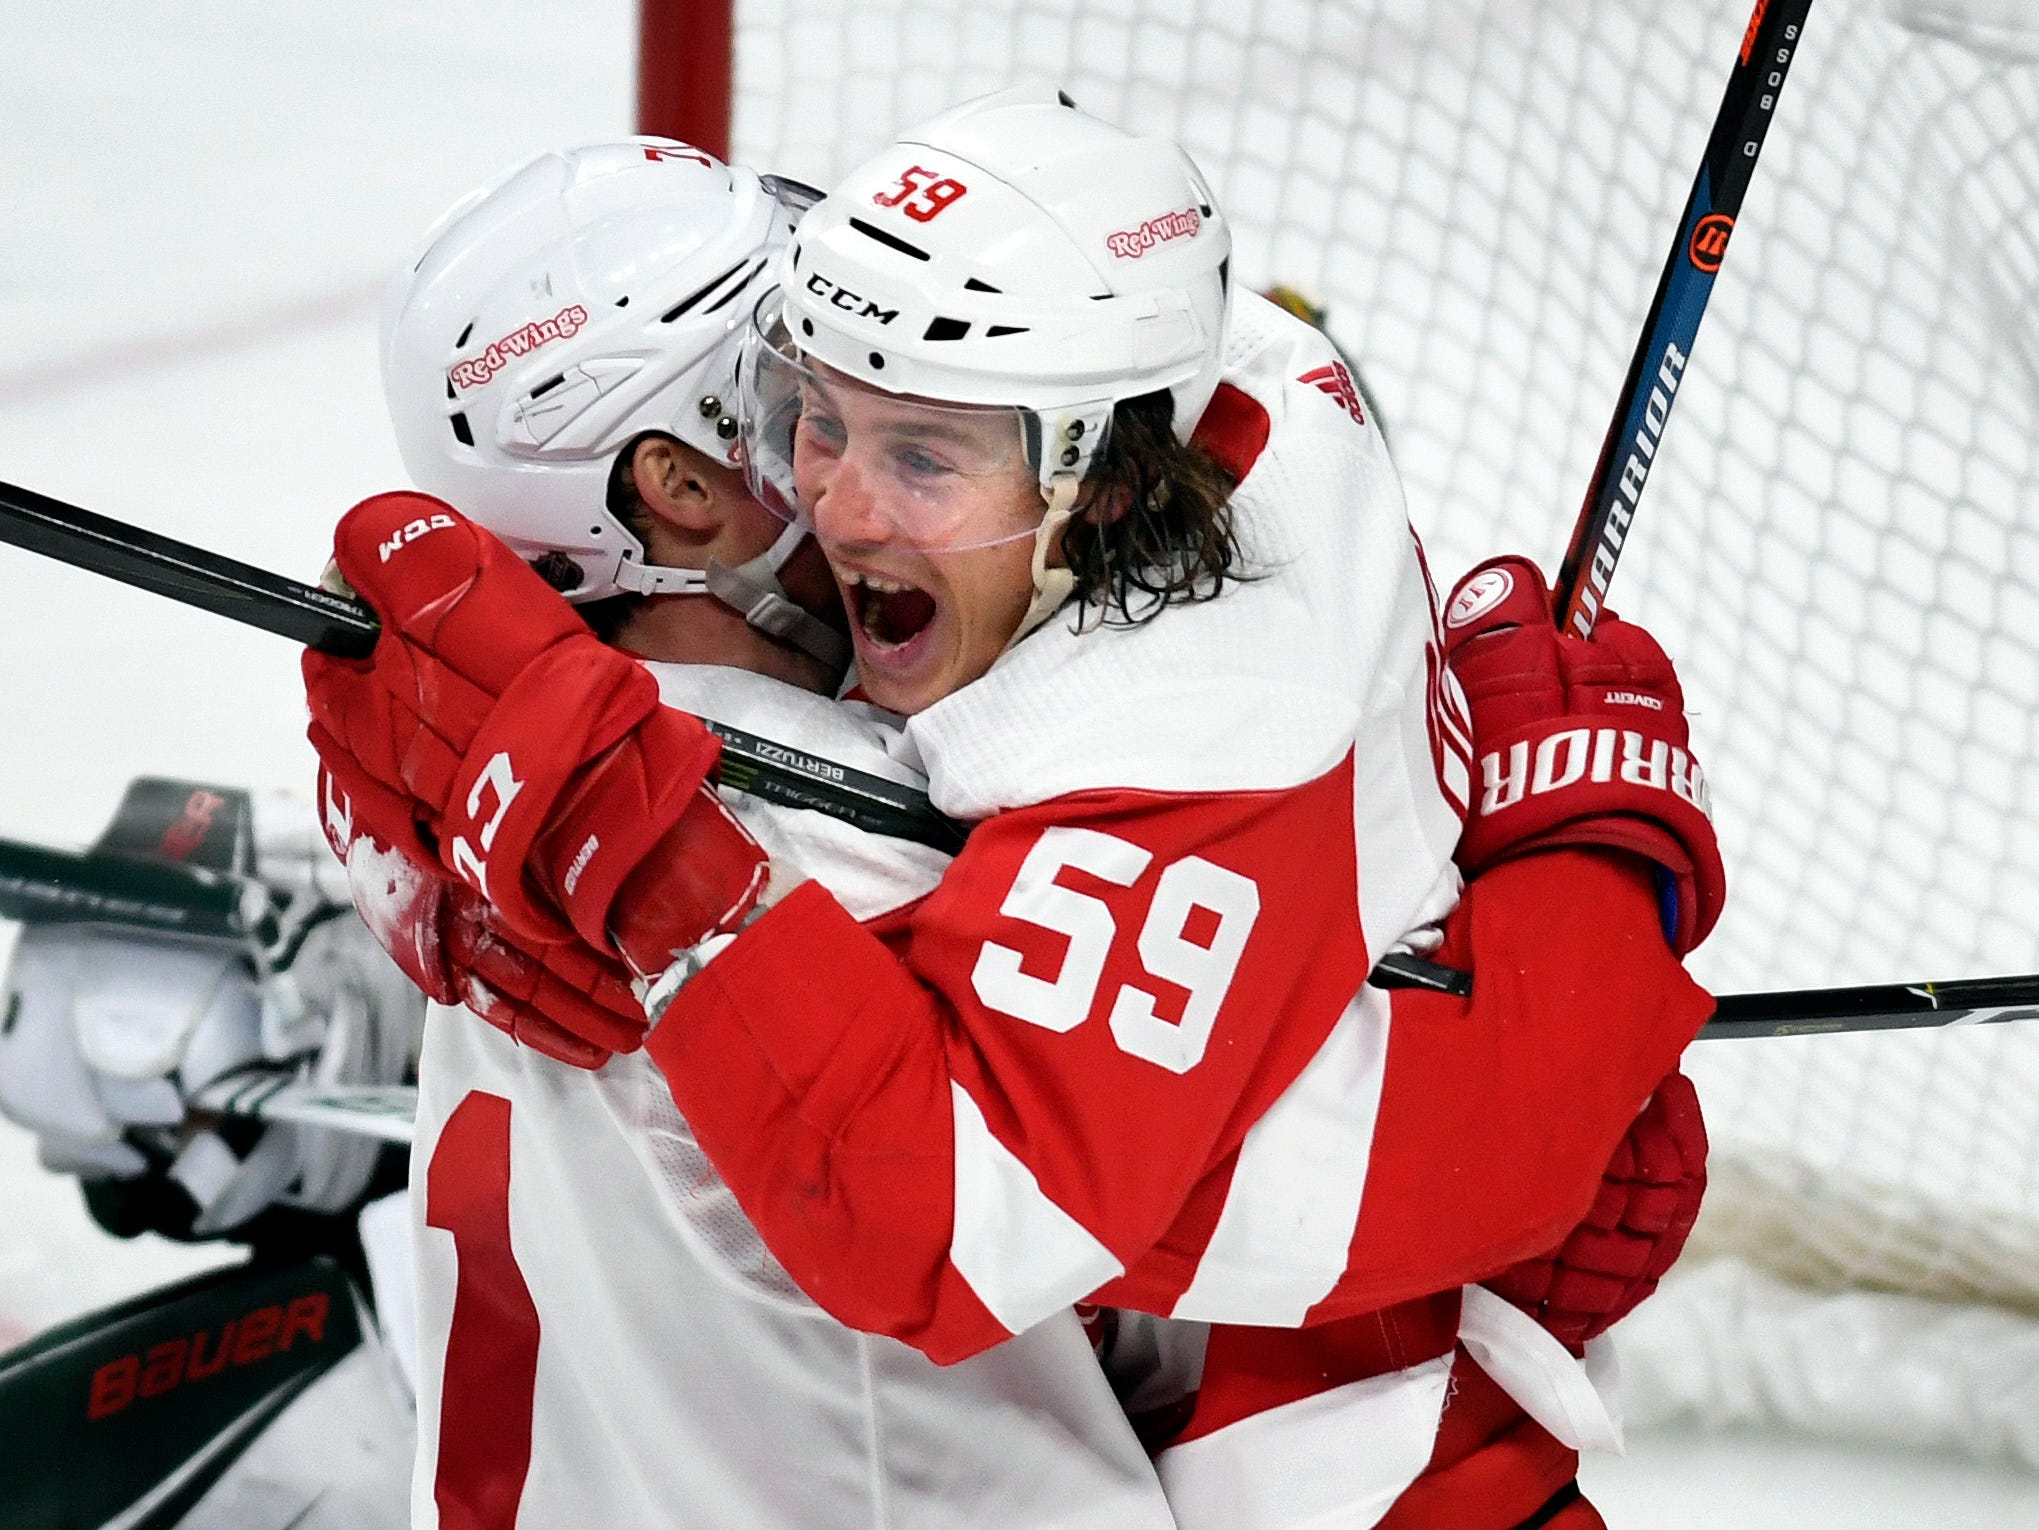 Red Wings forward Dylan Larkin, left, hugs Tyler Bertuzzi after he scored his hat trick during the third period of the Wings' 5-2 win on Saturday, Jan. 12, 2019, in St. Paul, Minn.